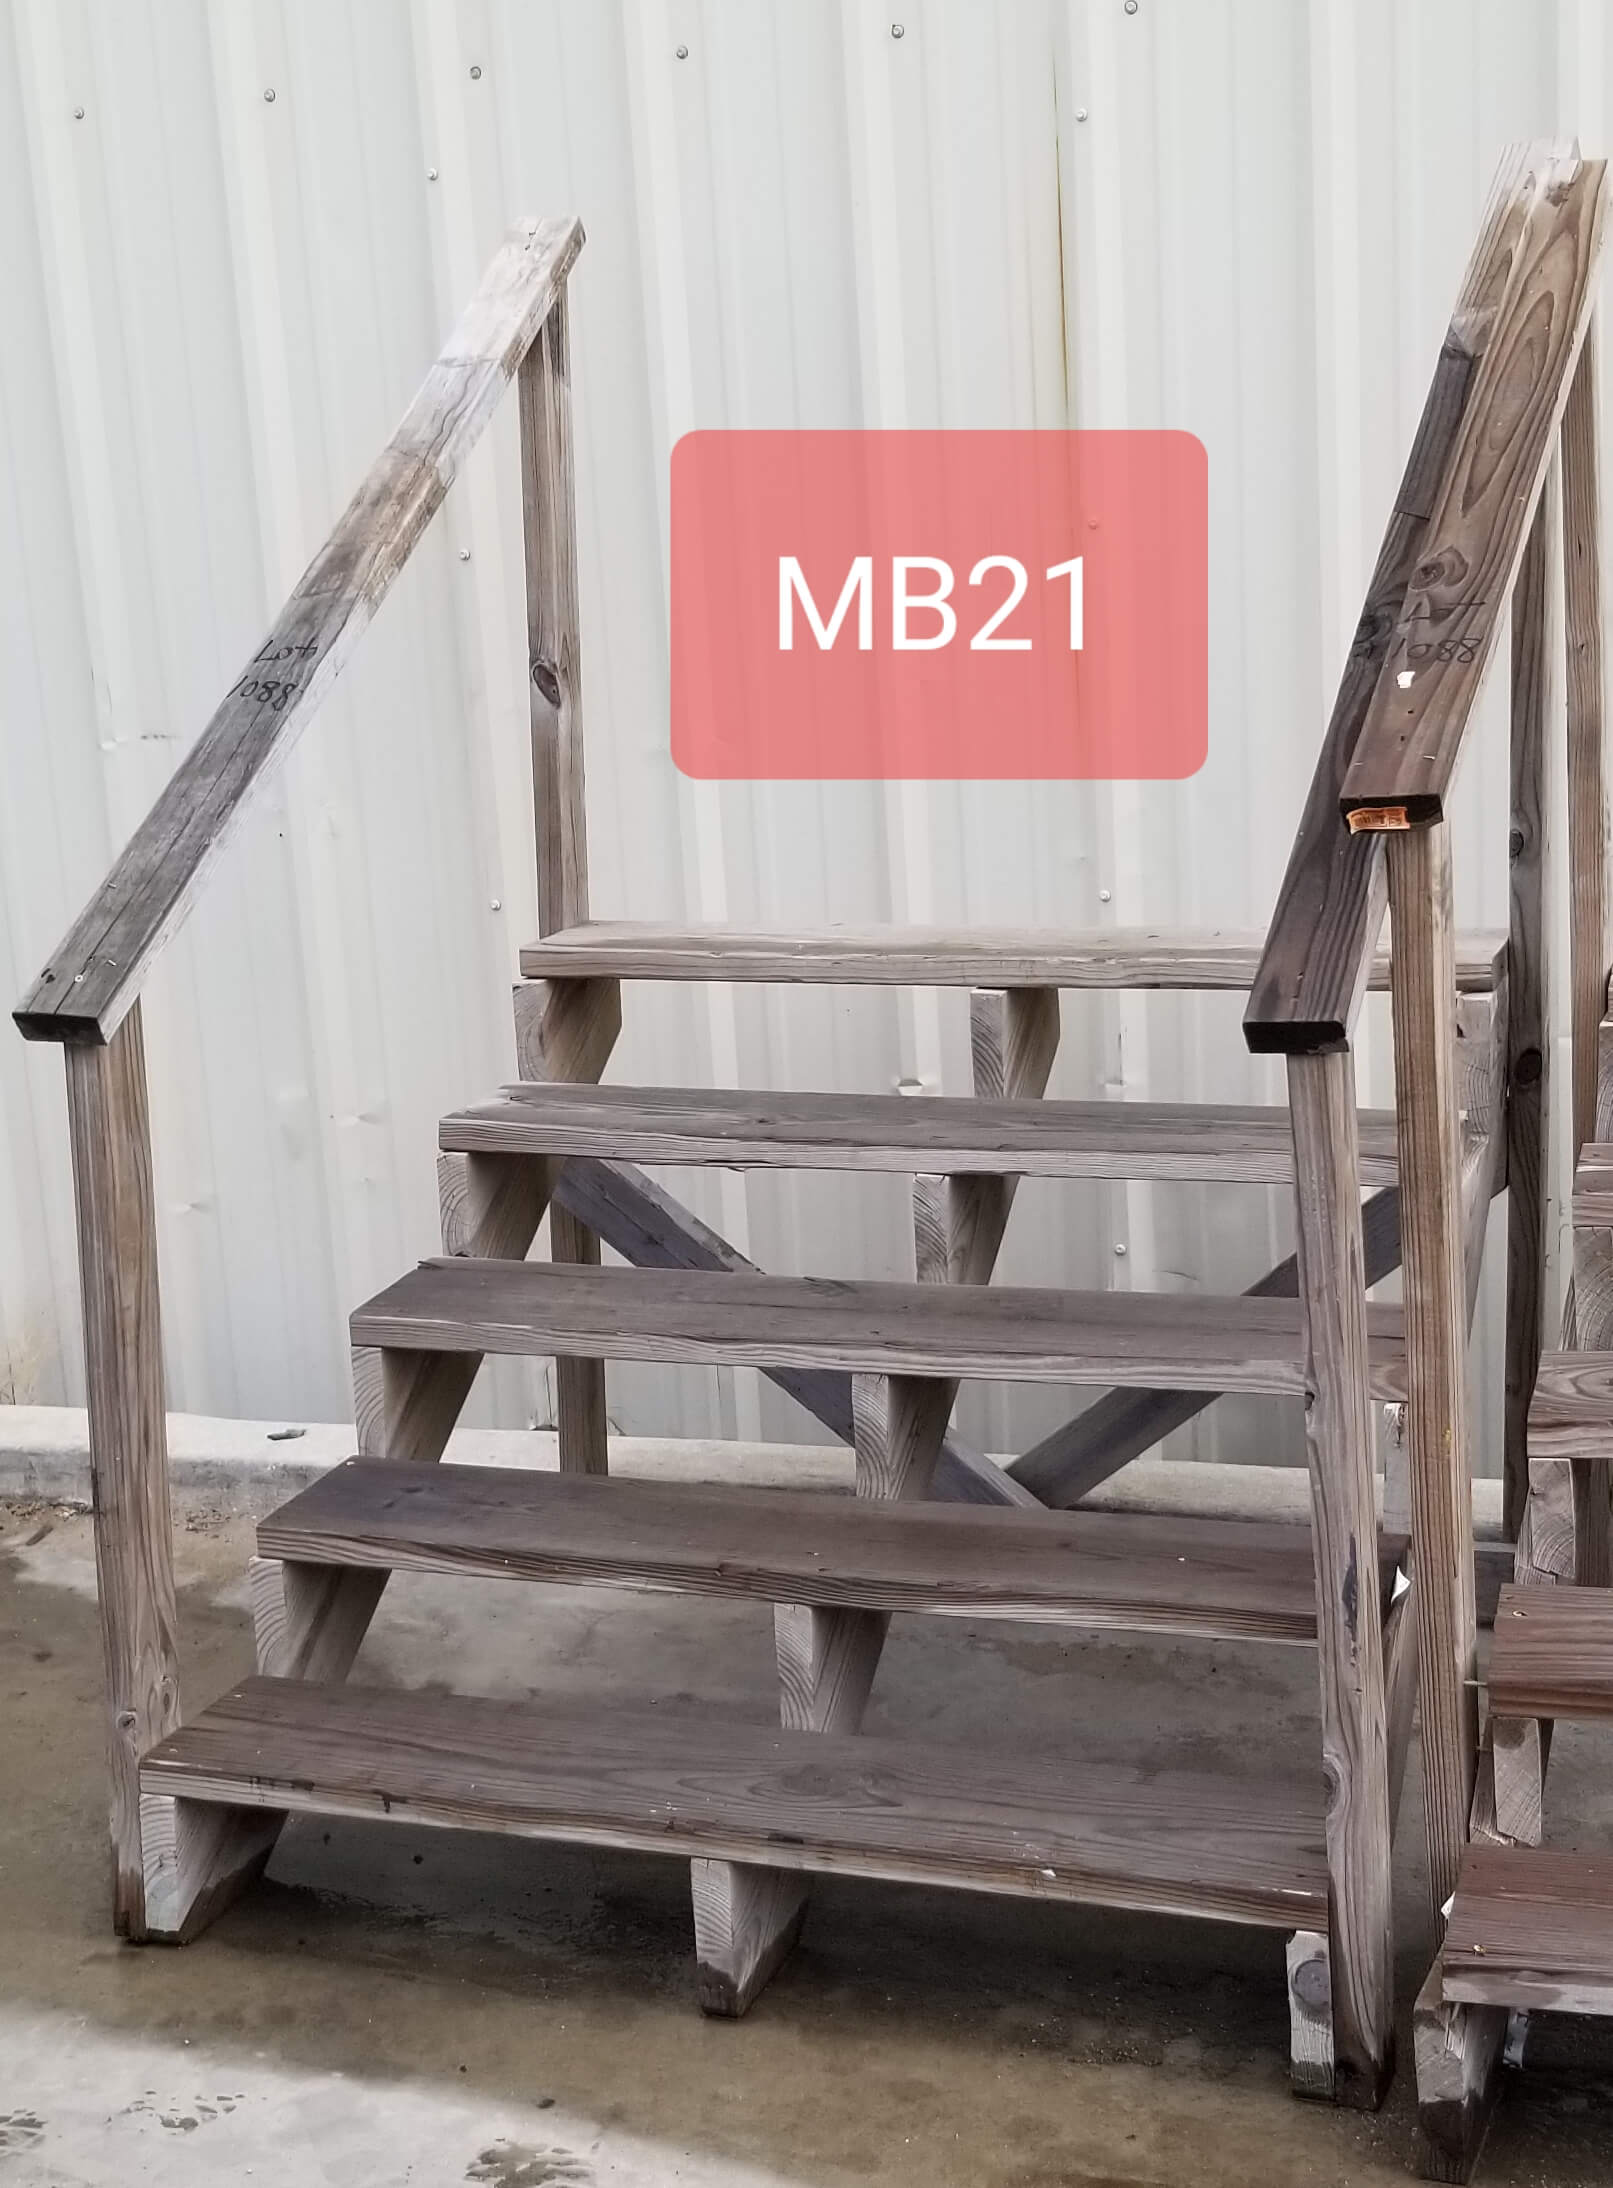 Mb So Mb 21 53 X 35 X 50 Wood Texas Iron And Metal